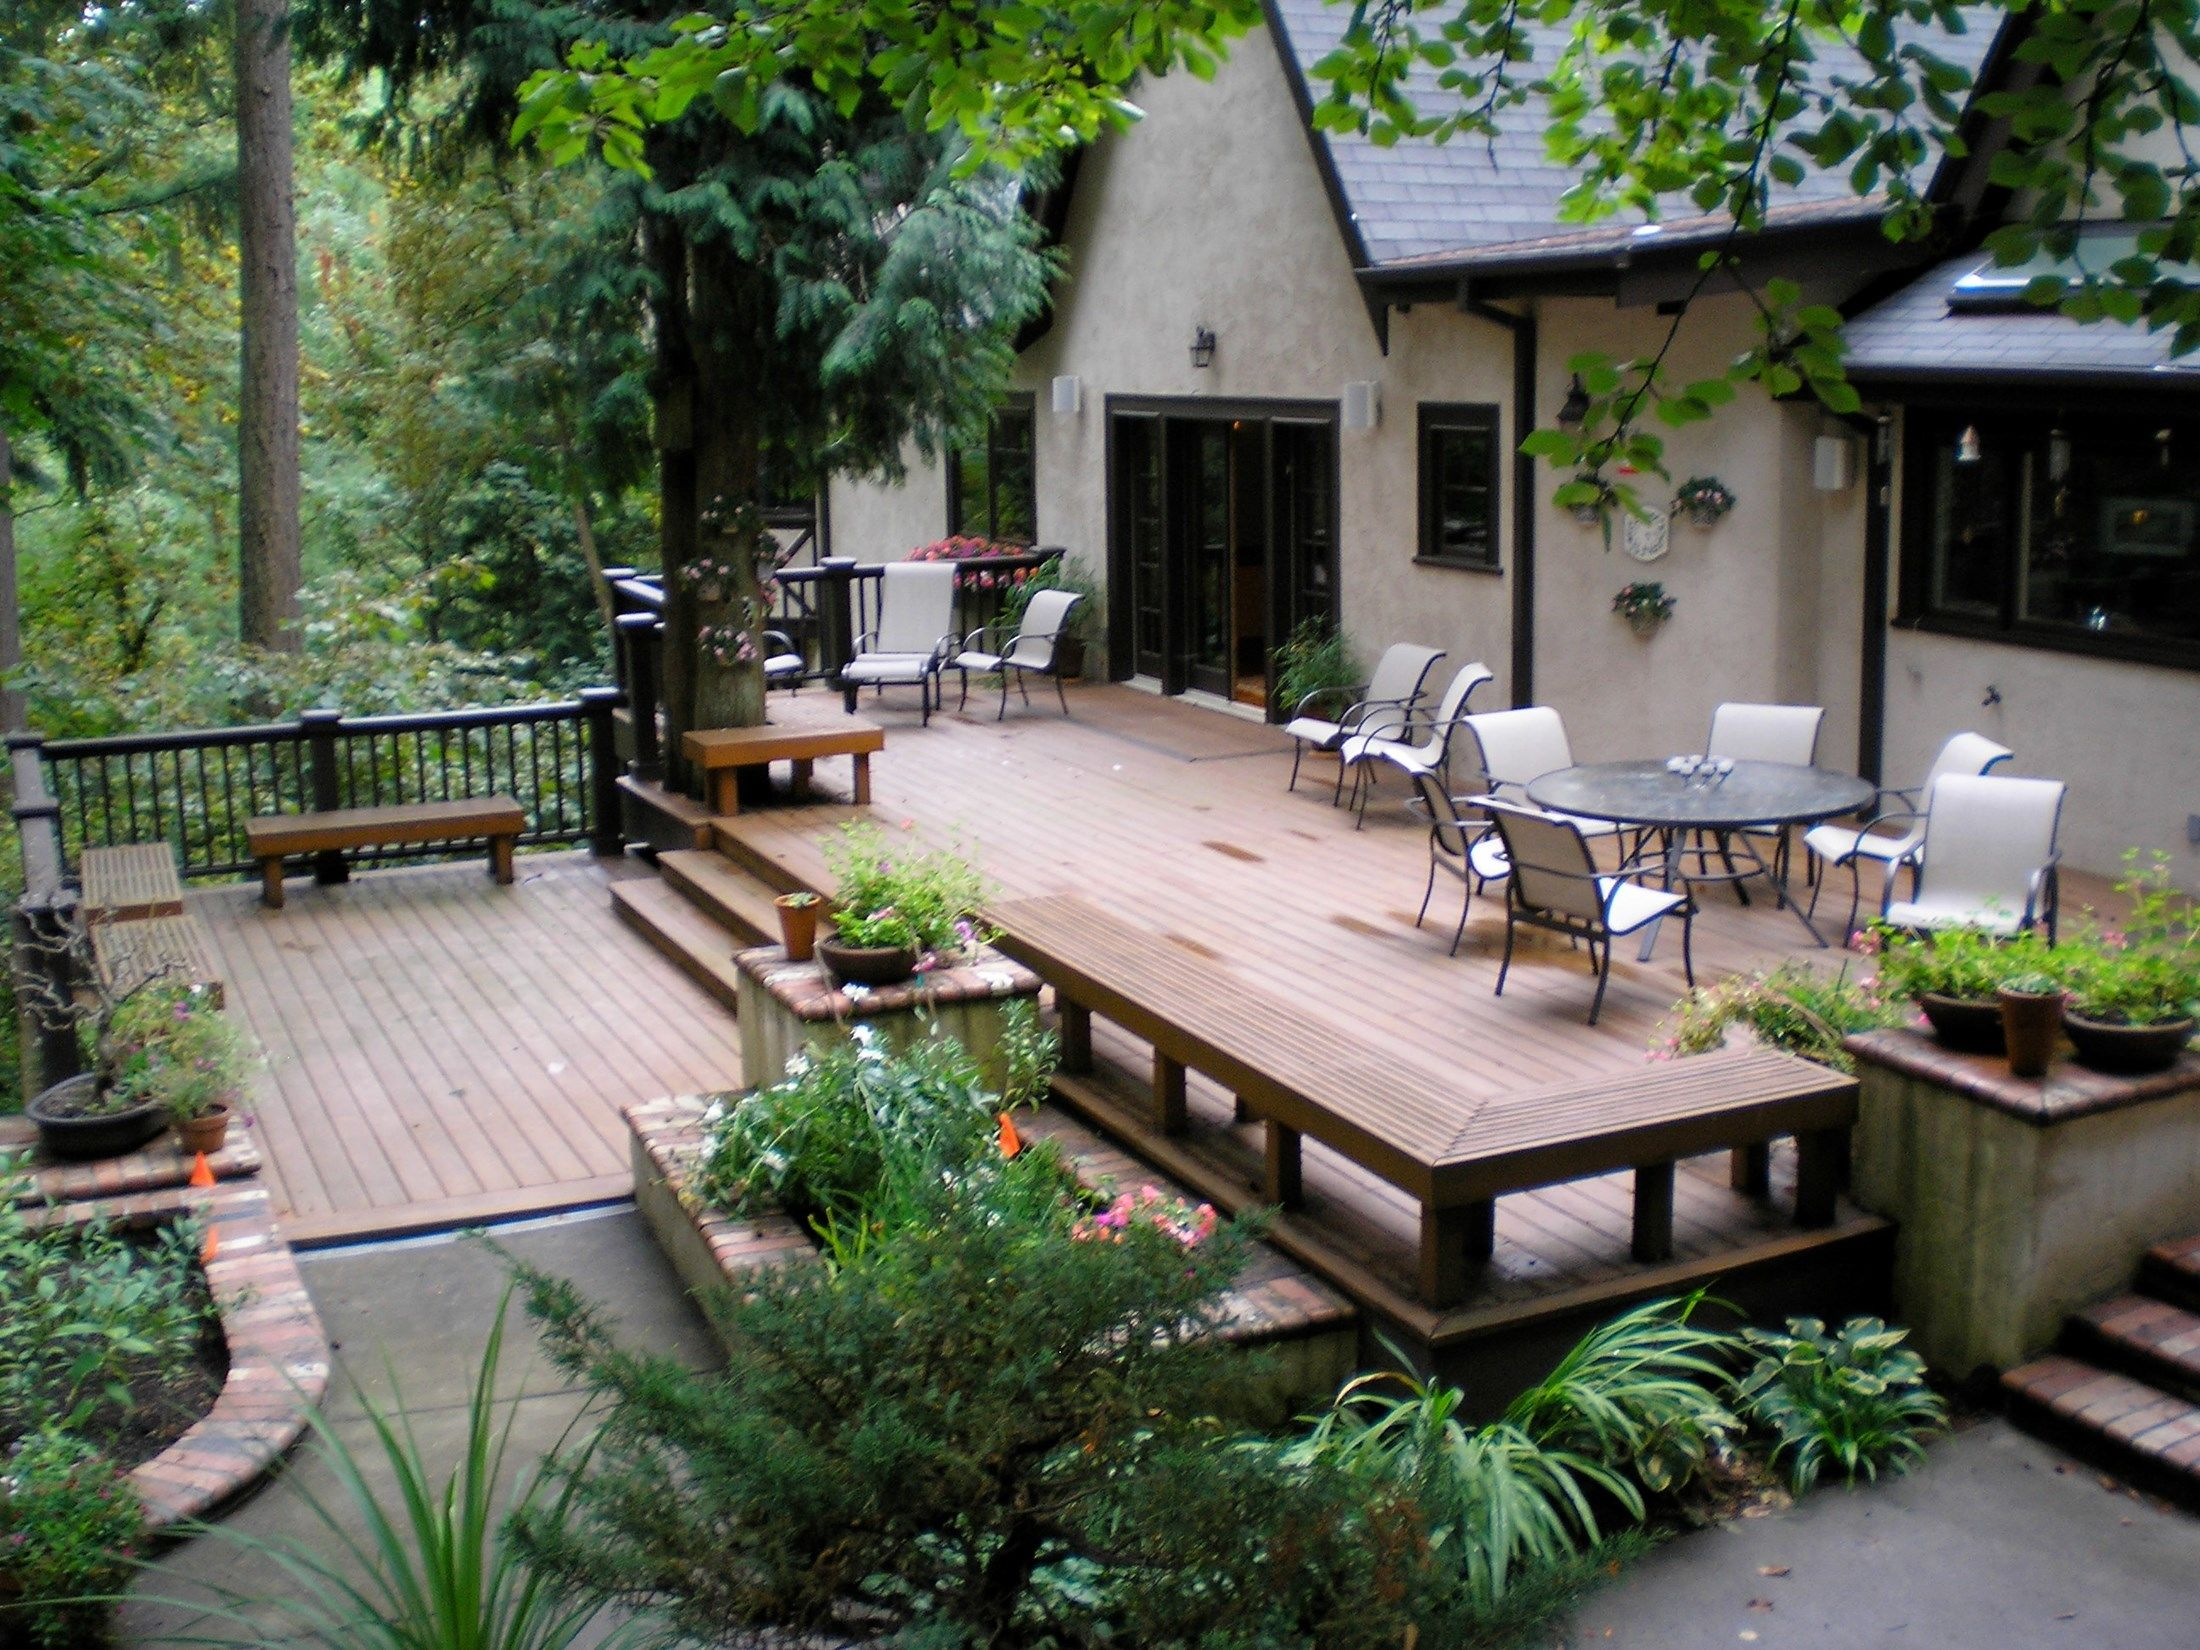 Ordinaire Vermont Woods · Cedar Mill Deck Company. 4 Pictures